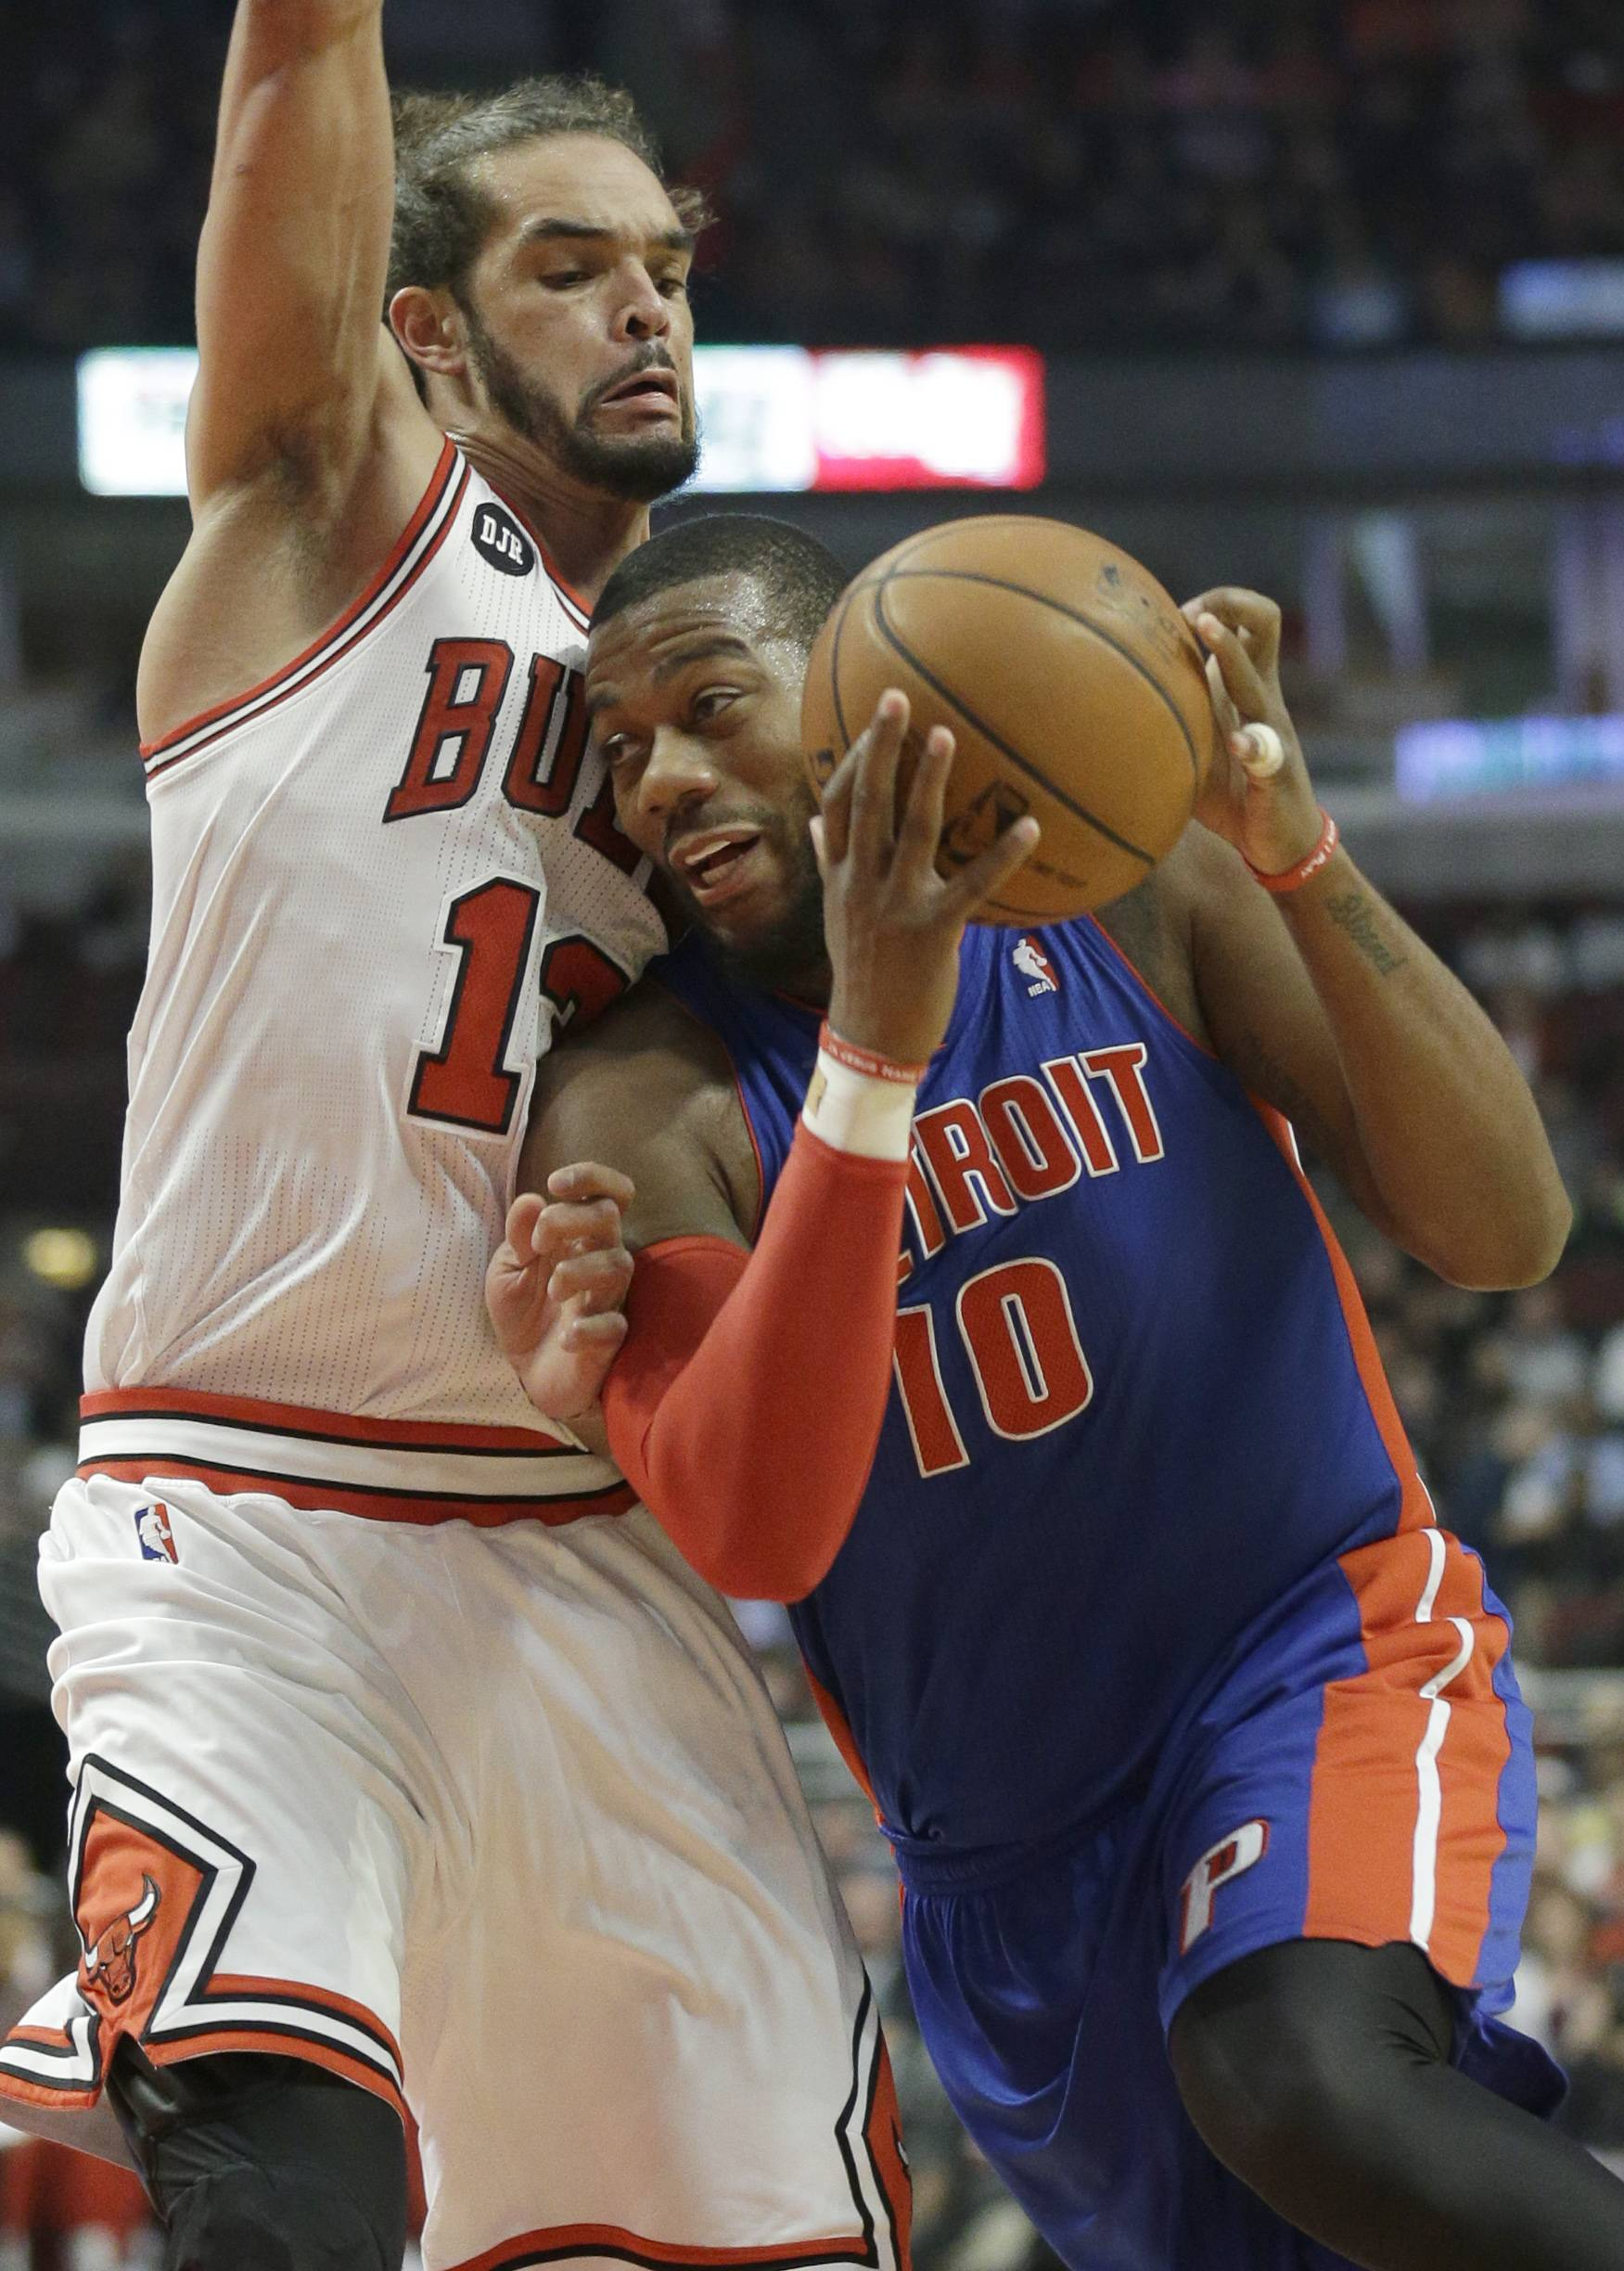 The work ethic of center Joakim Noah and the rest of the Bulls could carry them deep into the playoffs.